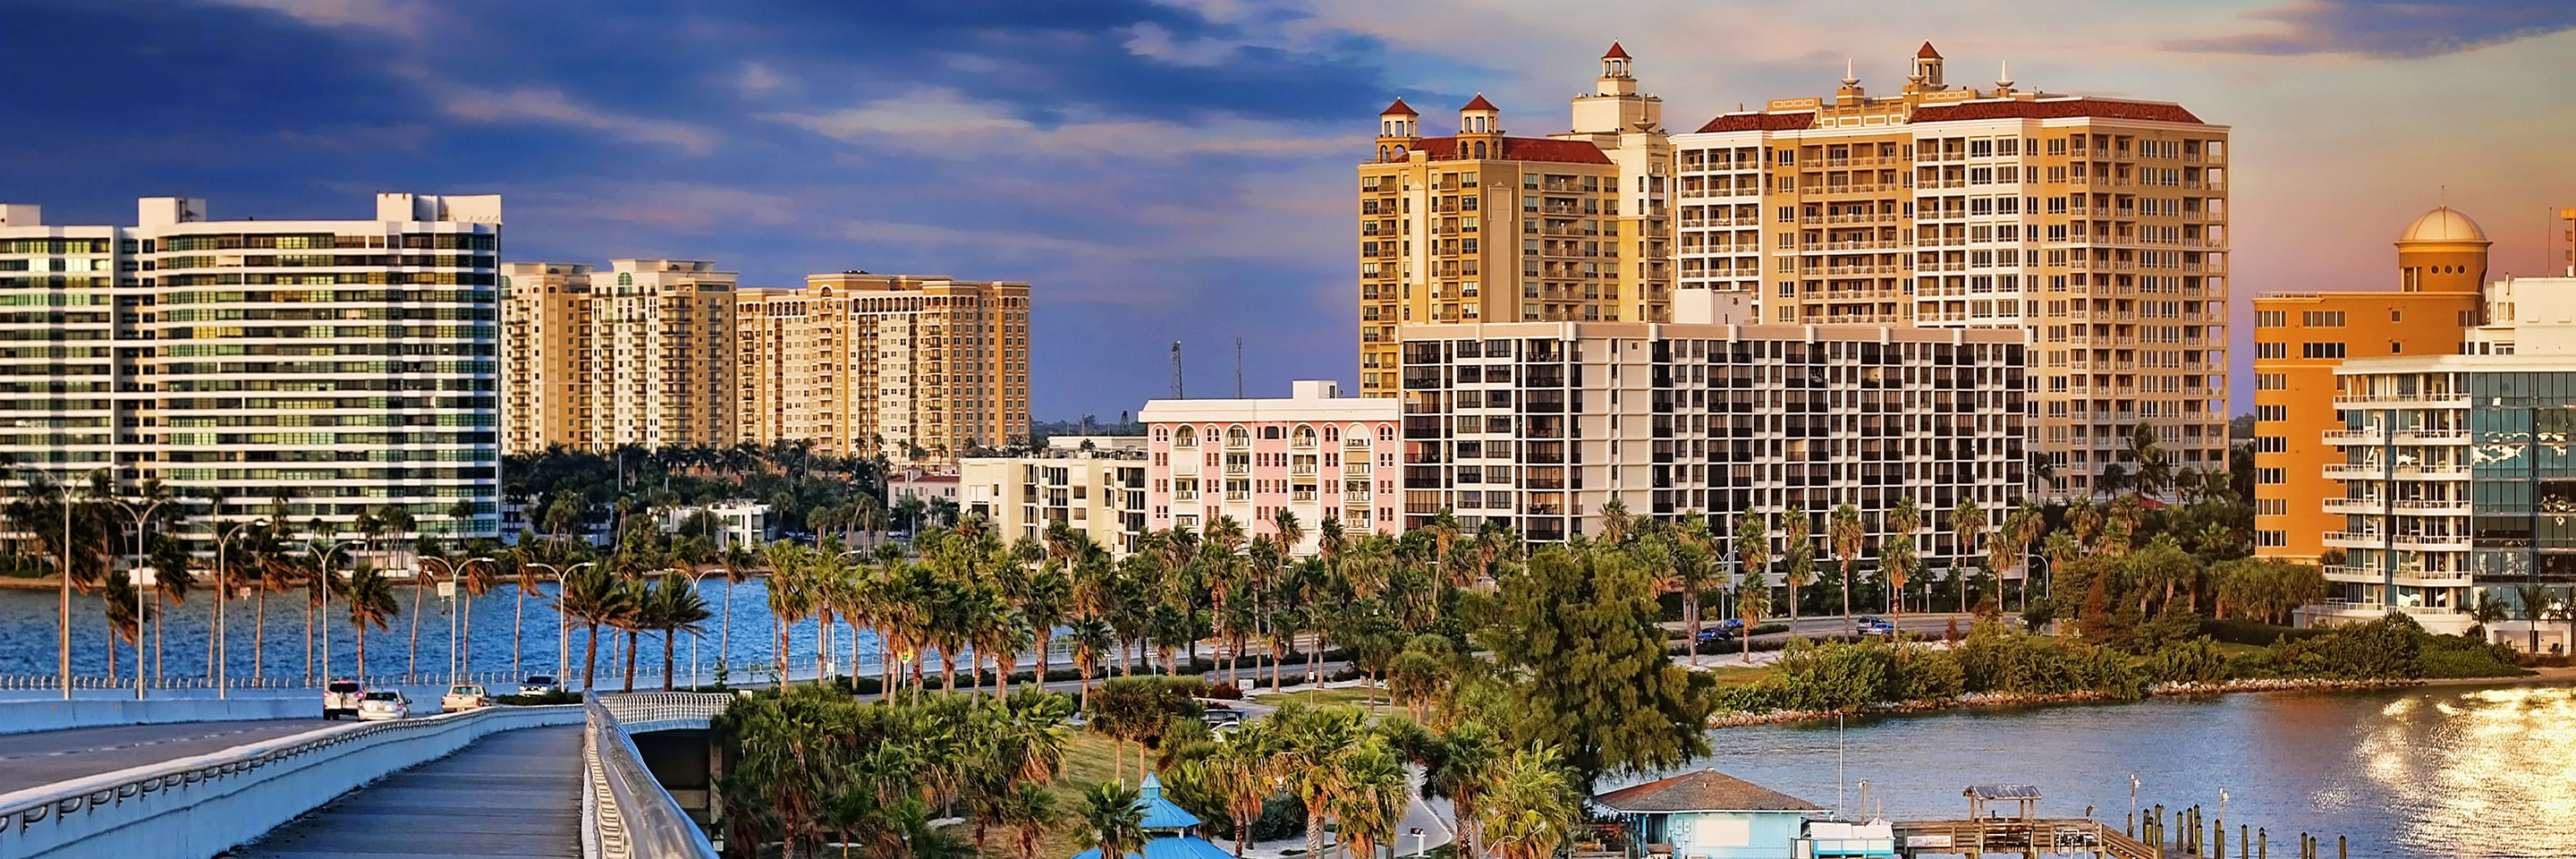 Top Hotels in Sarasota | Marriott Sarasota Hotels